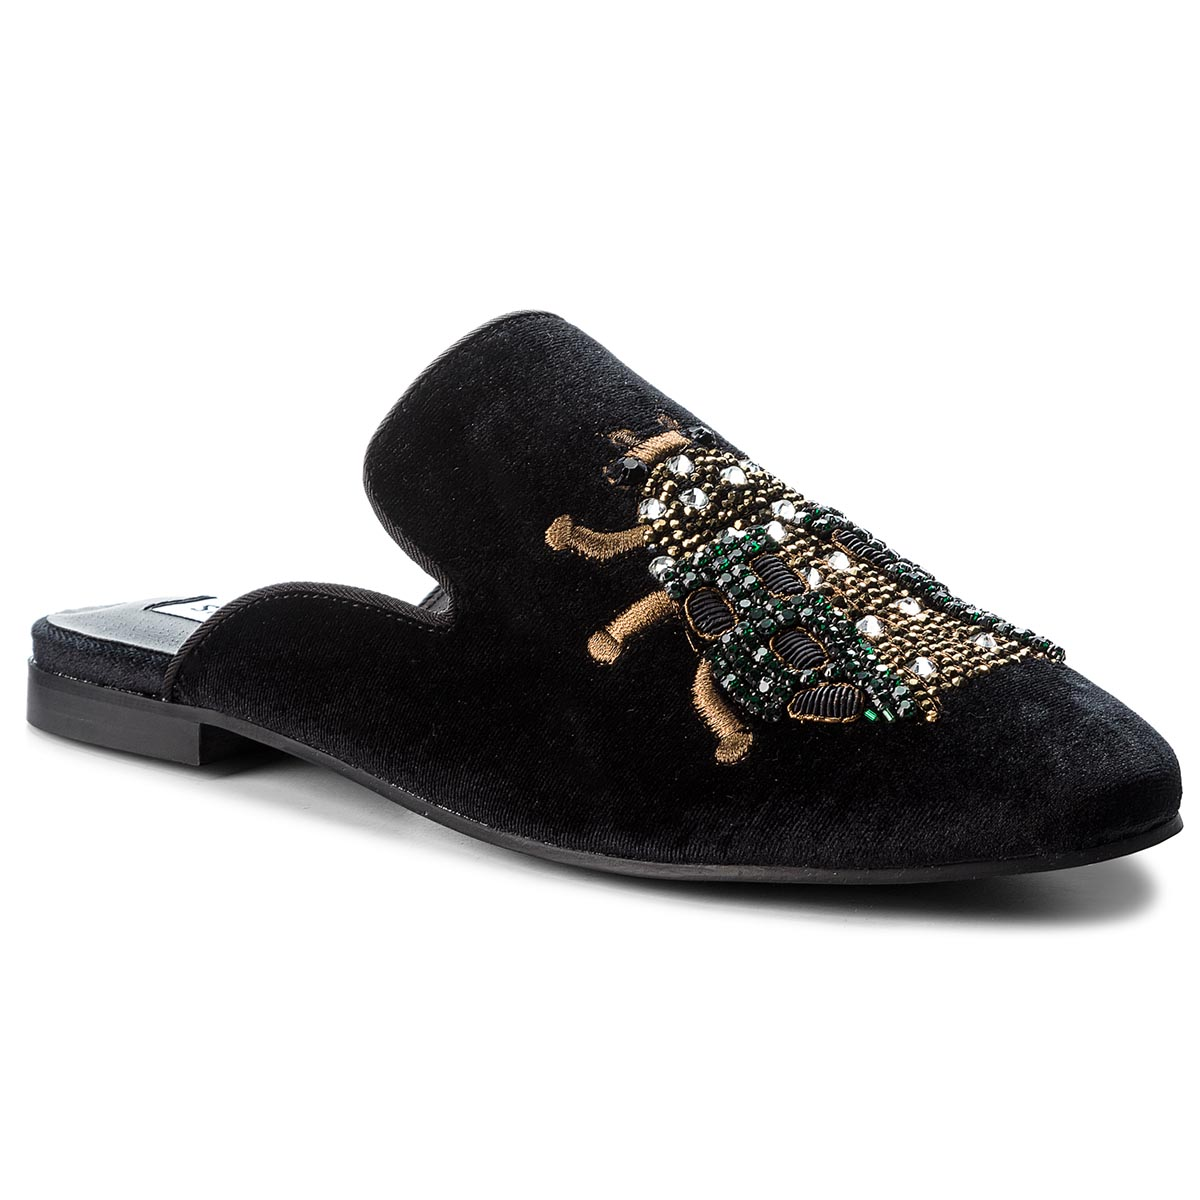 Klapki STEVE MADDEN - Hugh Loafer 91000712-09052-01003 Black Multi